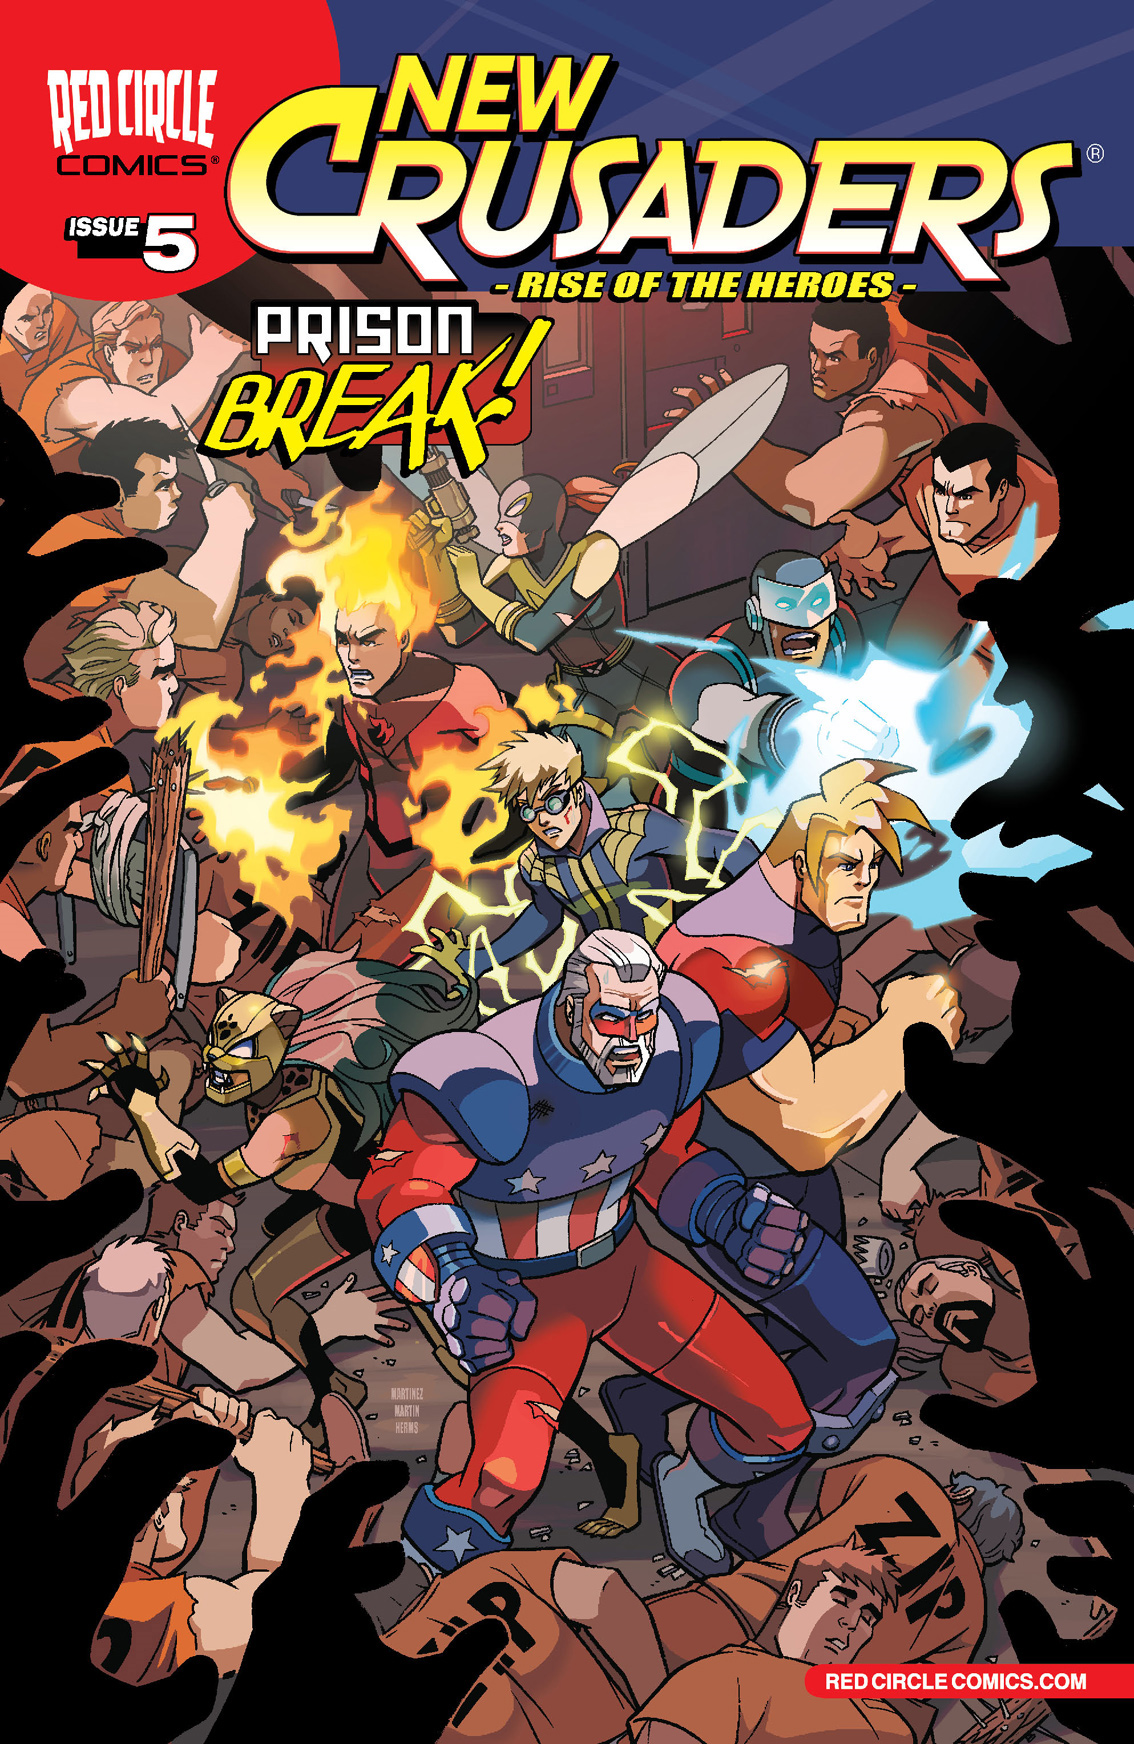 New Crusaders: Rise of the Heroes #5 By: Ian Flynn, Alitha Martinez, Gary Martin, Matt Herms, John Workman